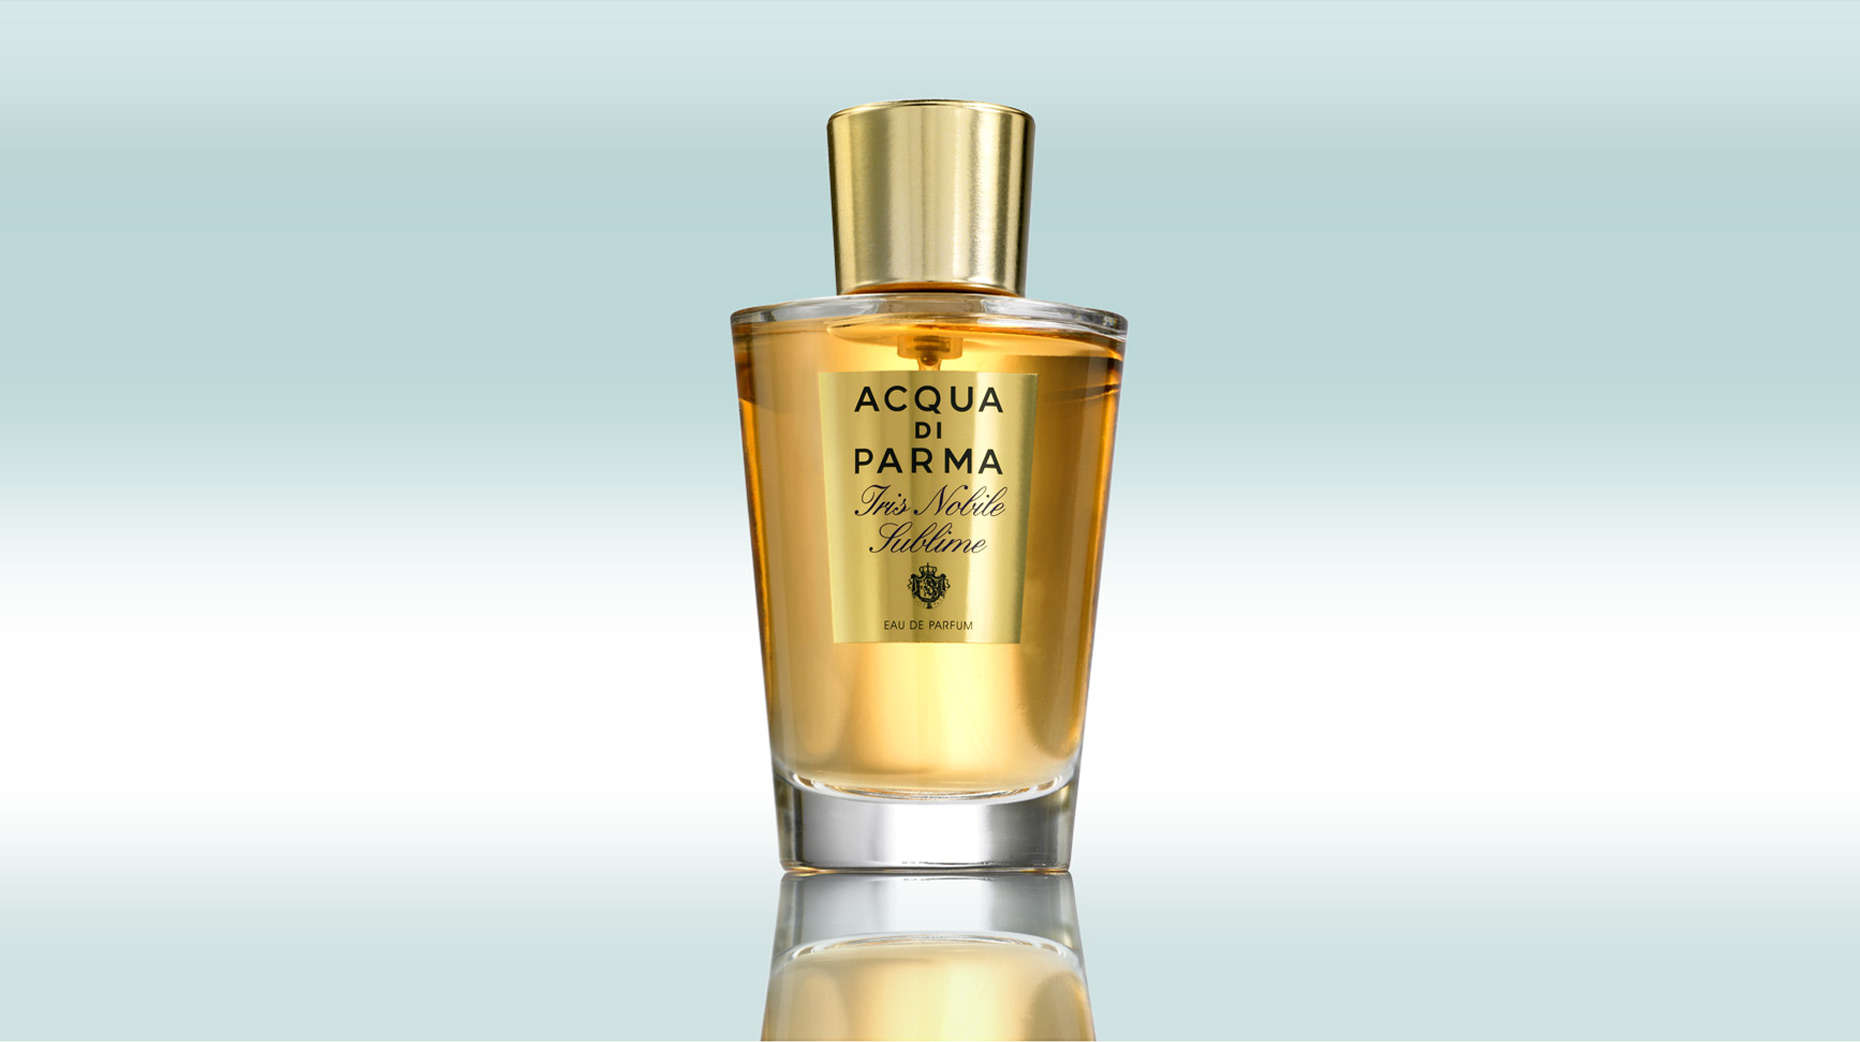 luis santana nyc still life photography Acqua-Di-Parma-Parfum-Fragrance